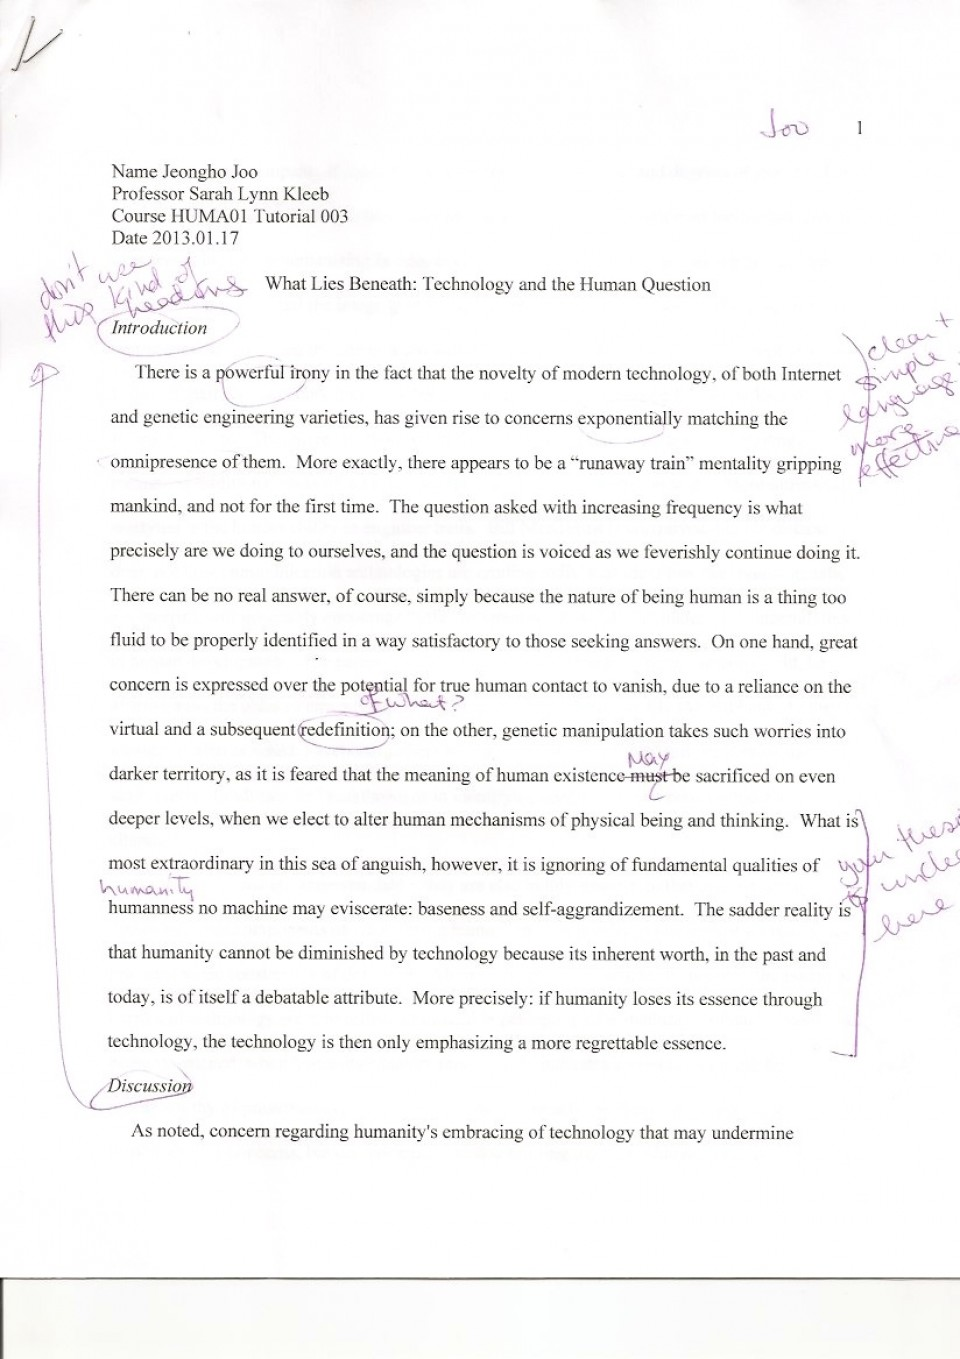 002 Essay Example What Does It Mean To Human Phenomenal Be Pdf Religion Anthropology 960